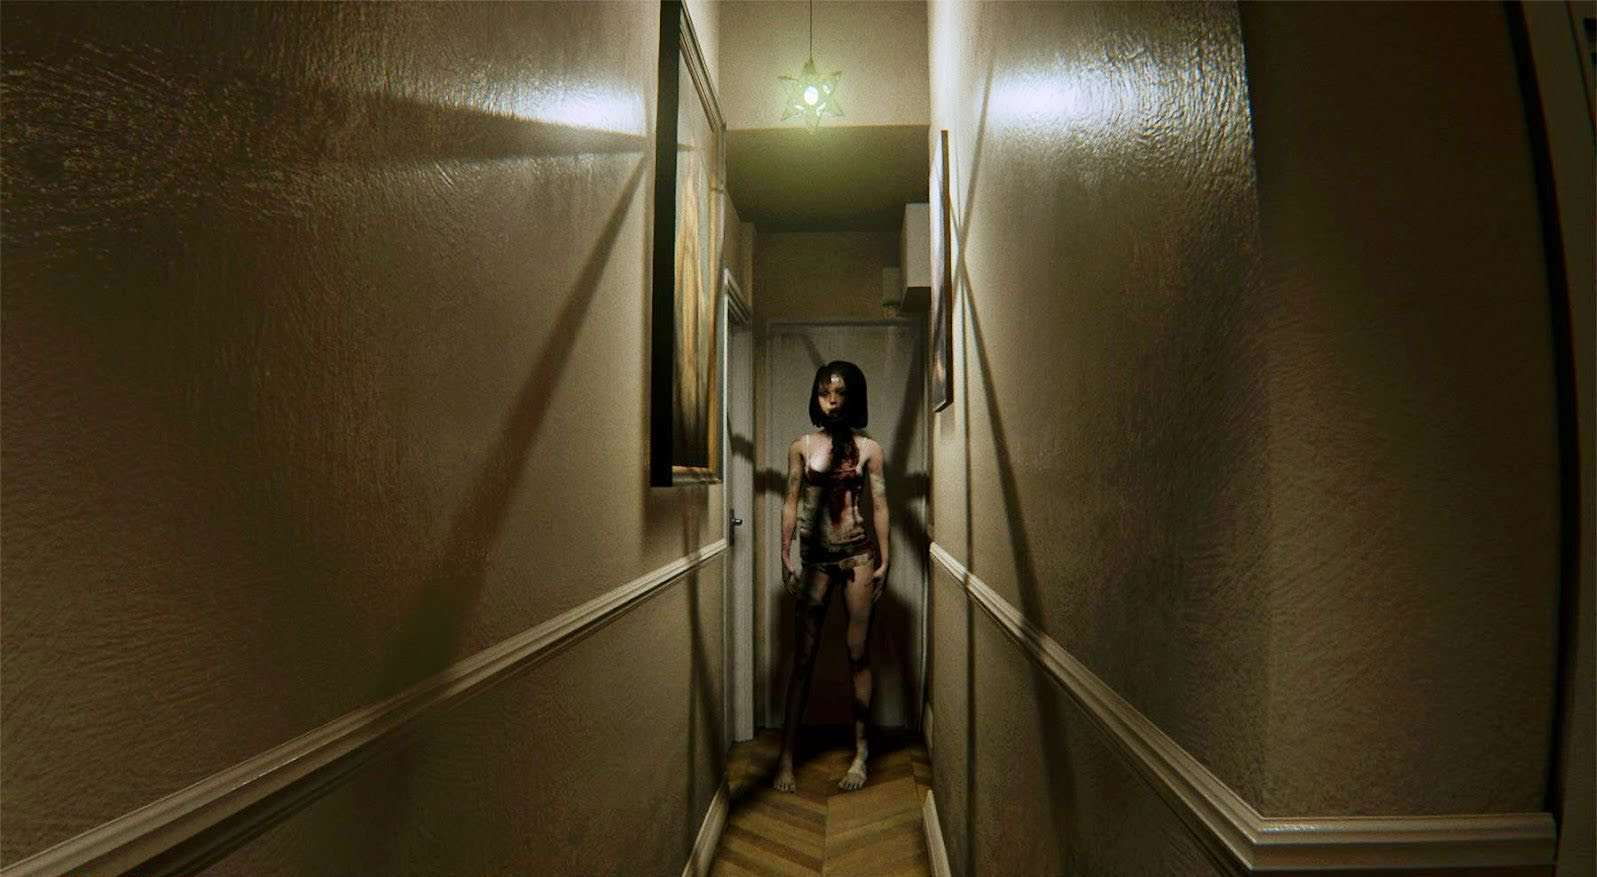 ixltk8guyh3lgdcsk8vs PT Inspired Horror Game Allison Road Has Been Cancelled